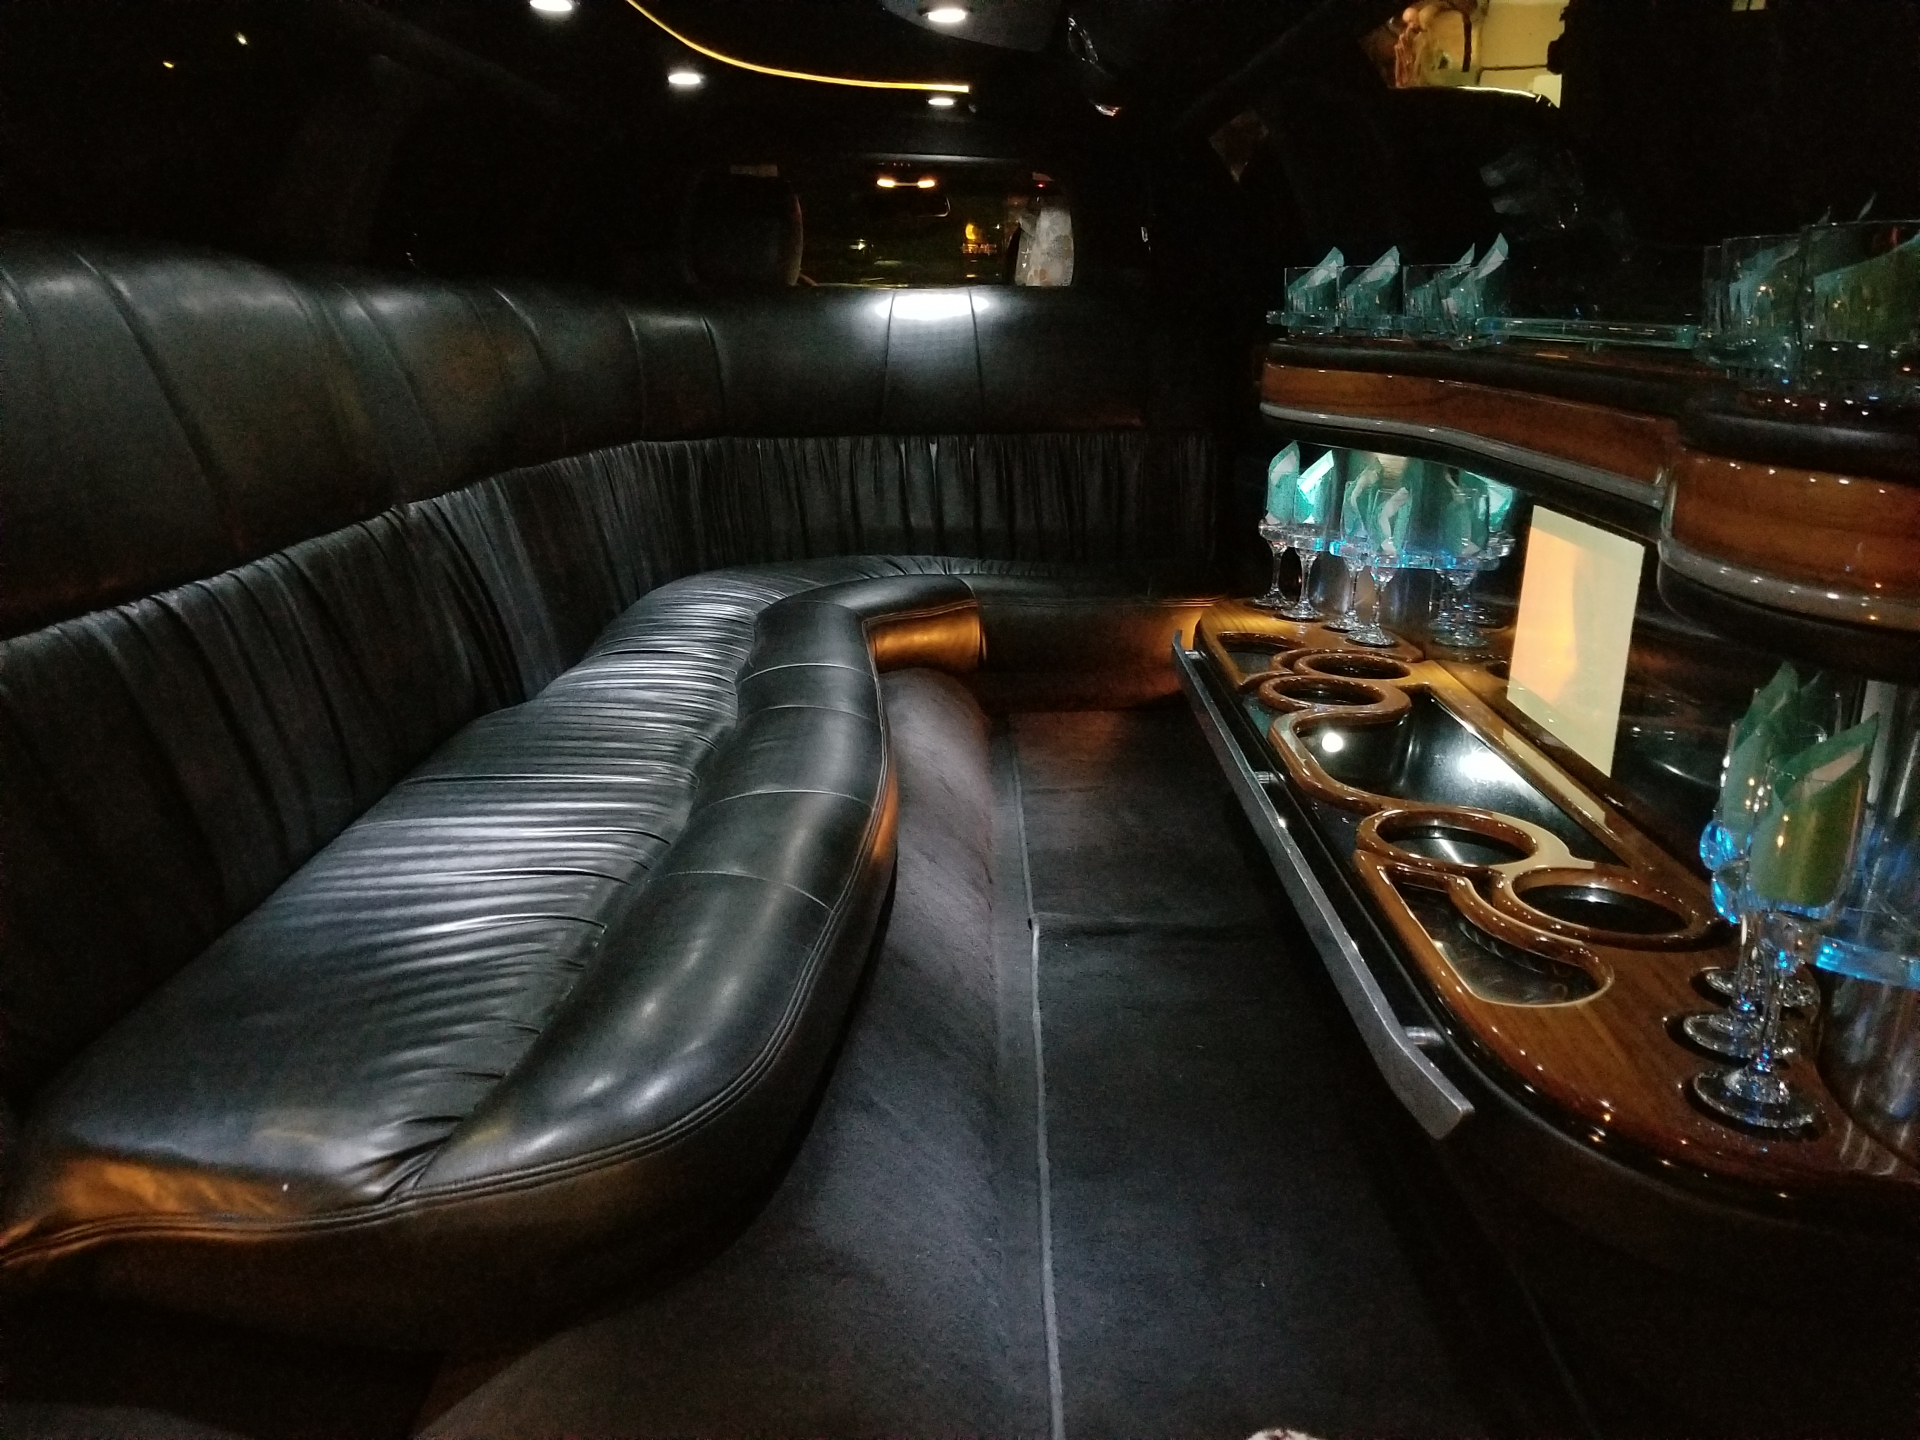 Stretch Limousine, 8 Passengers Limo / Napa, CA   / Hourly $65.00  / Hourly (Other services) $65.00